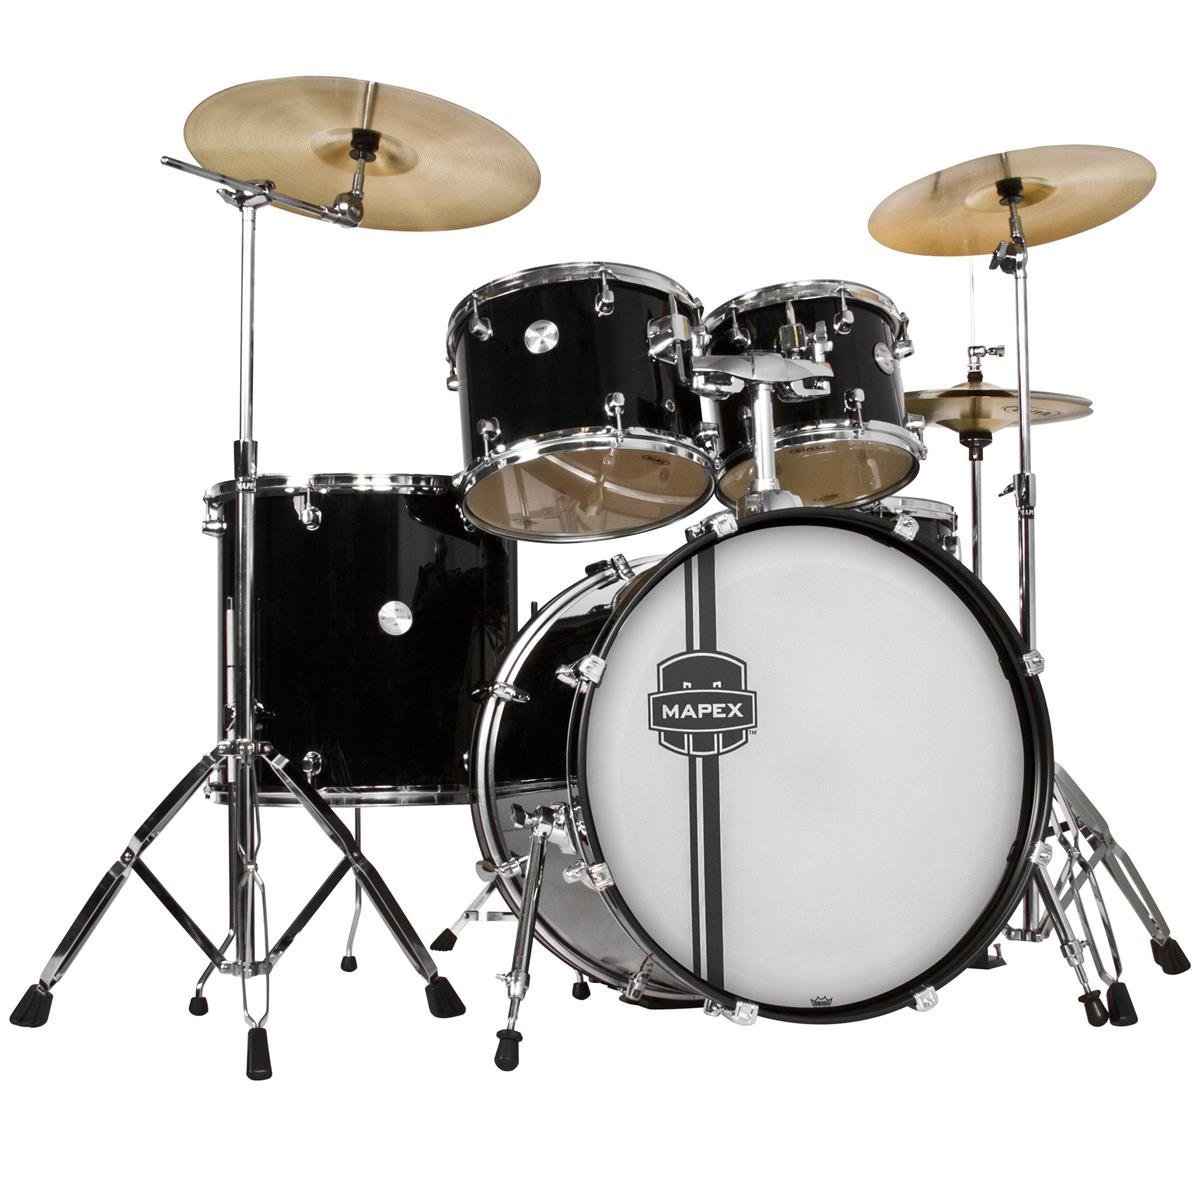 MAPEX VR5295TDKZZ Voyager Rock 5-Piece Drum Set with Cymbals, Black by Mapex (Image #1)